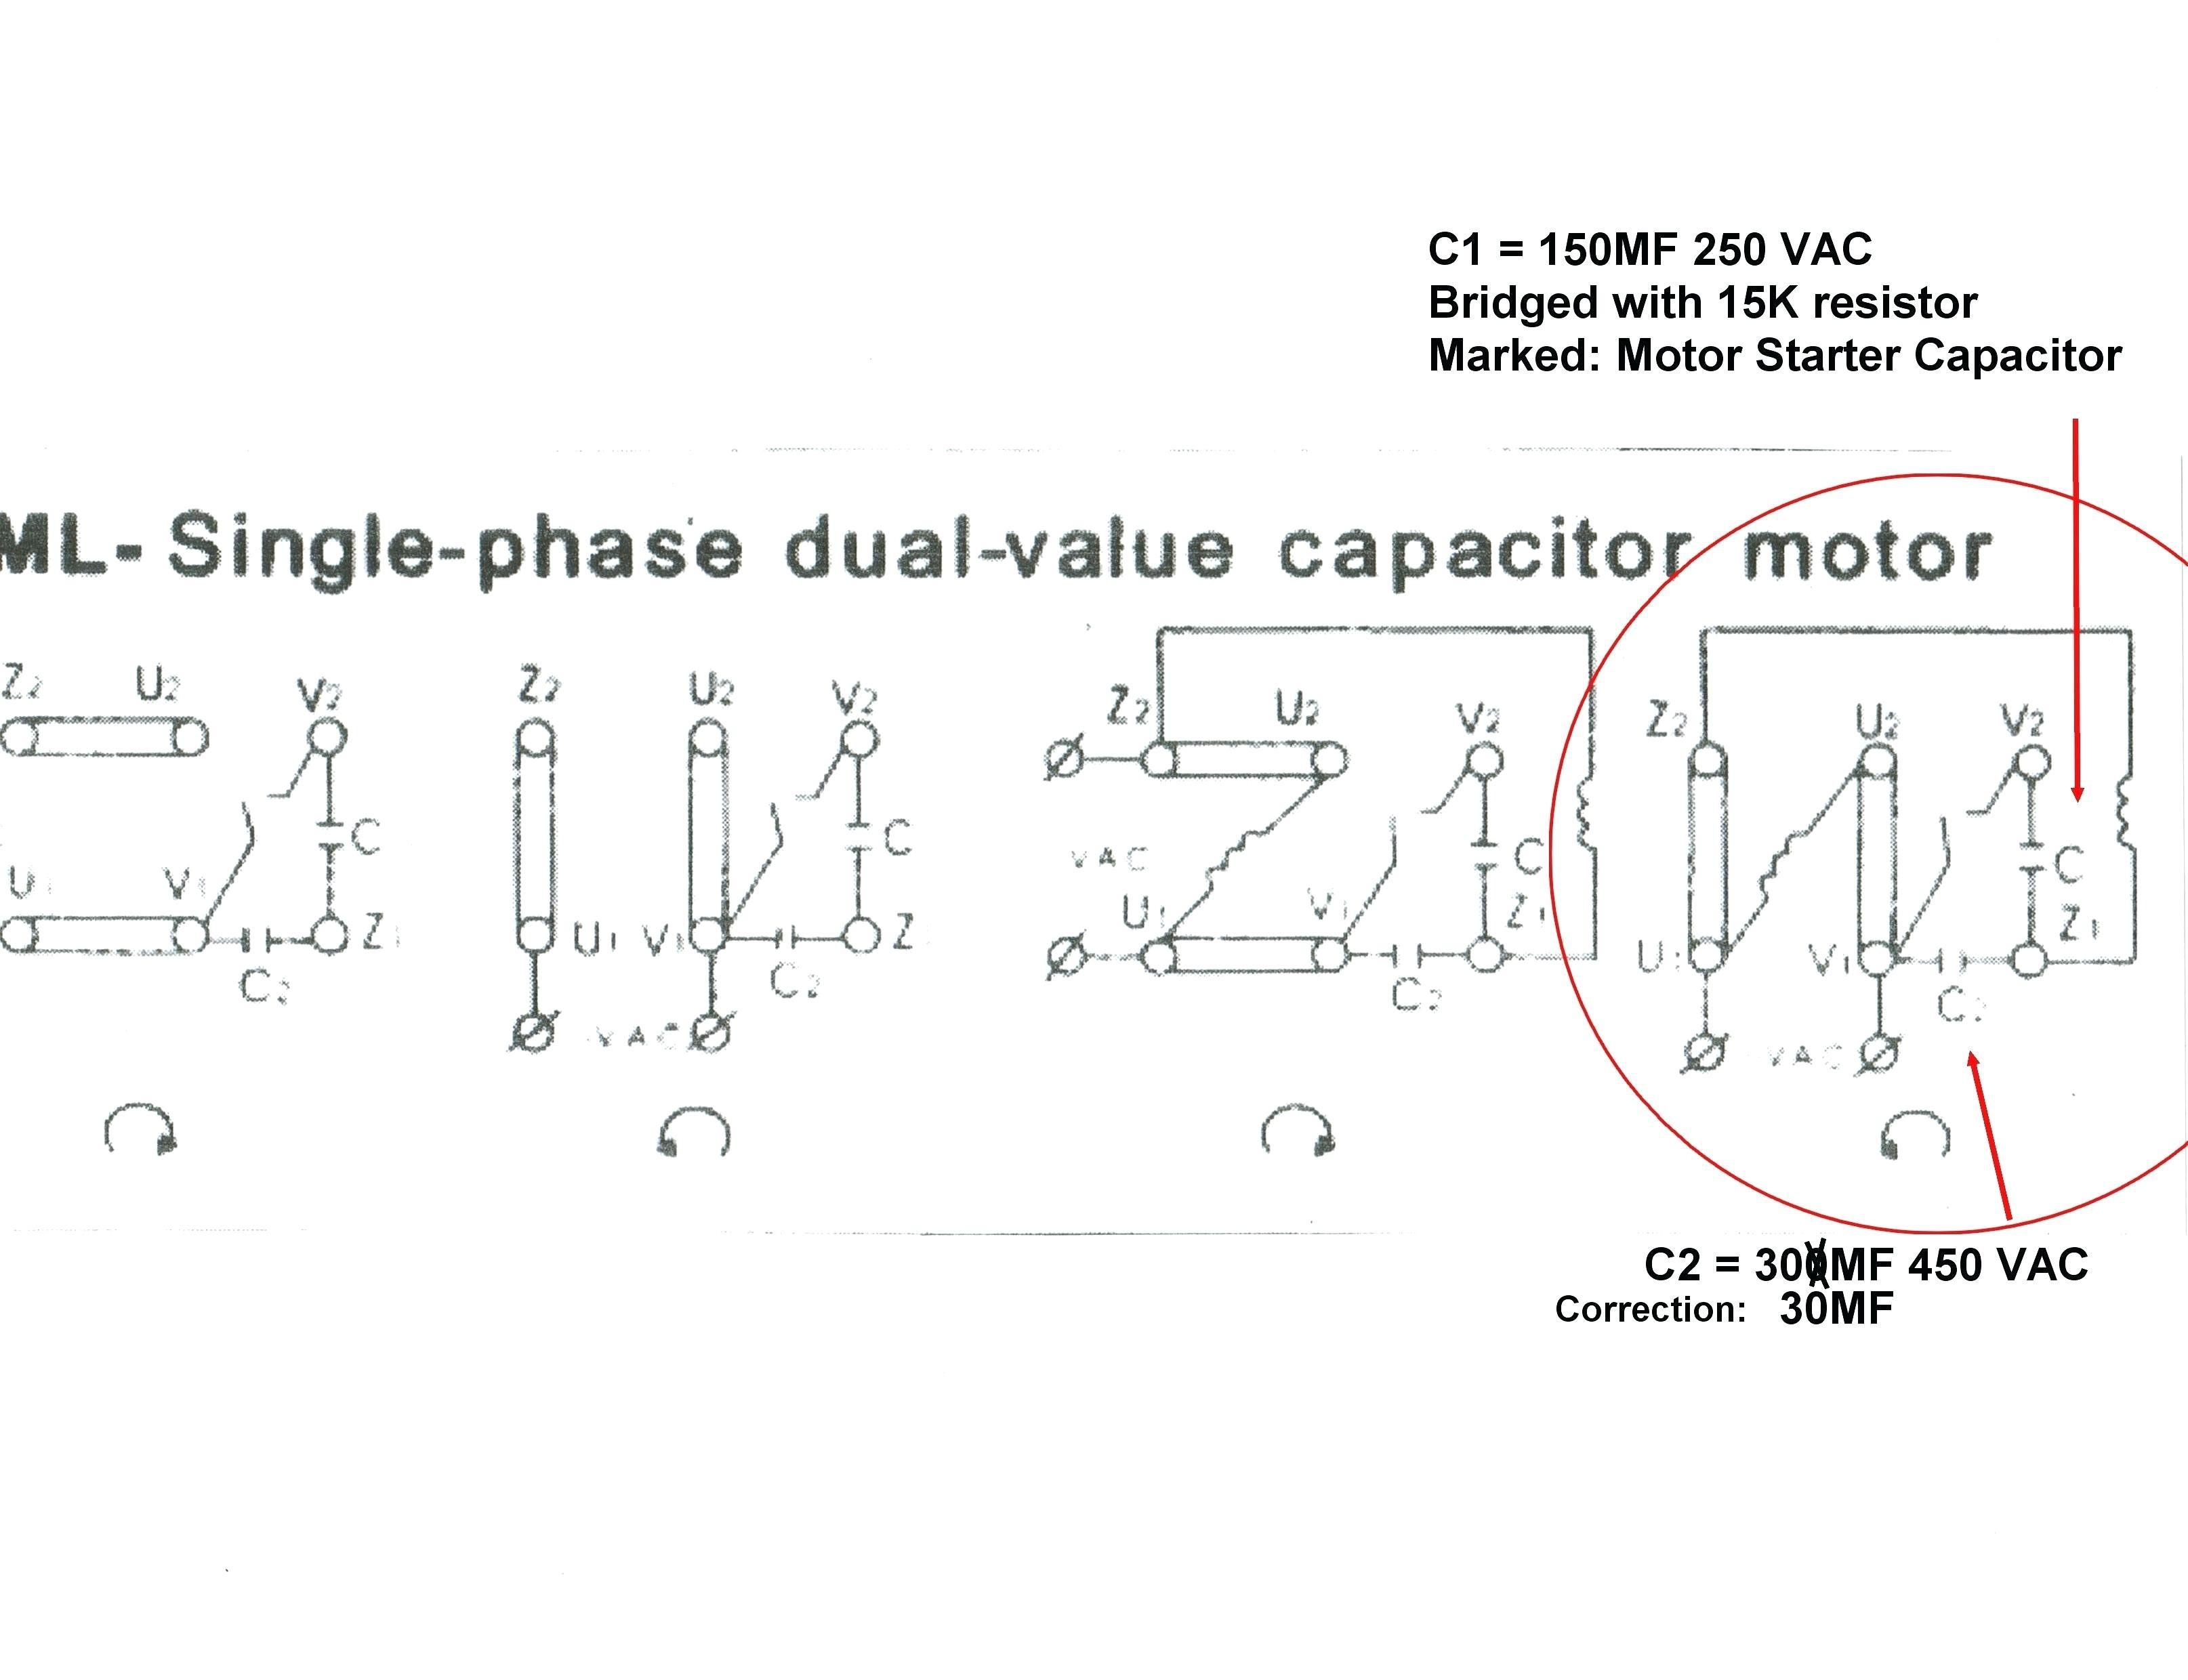 motor capacitor wiring diagram 110 electric motor wiring diagram 110 to 220 | free wiring diagram 5 hp baldor motor capacitor wiring diagram moreover #1